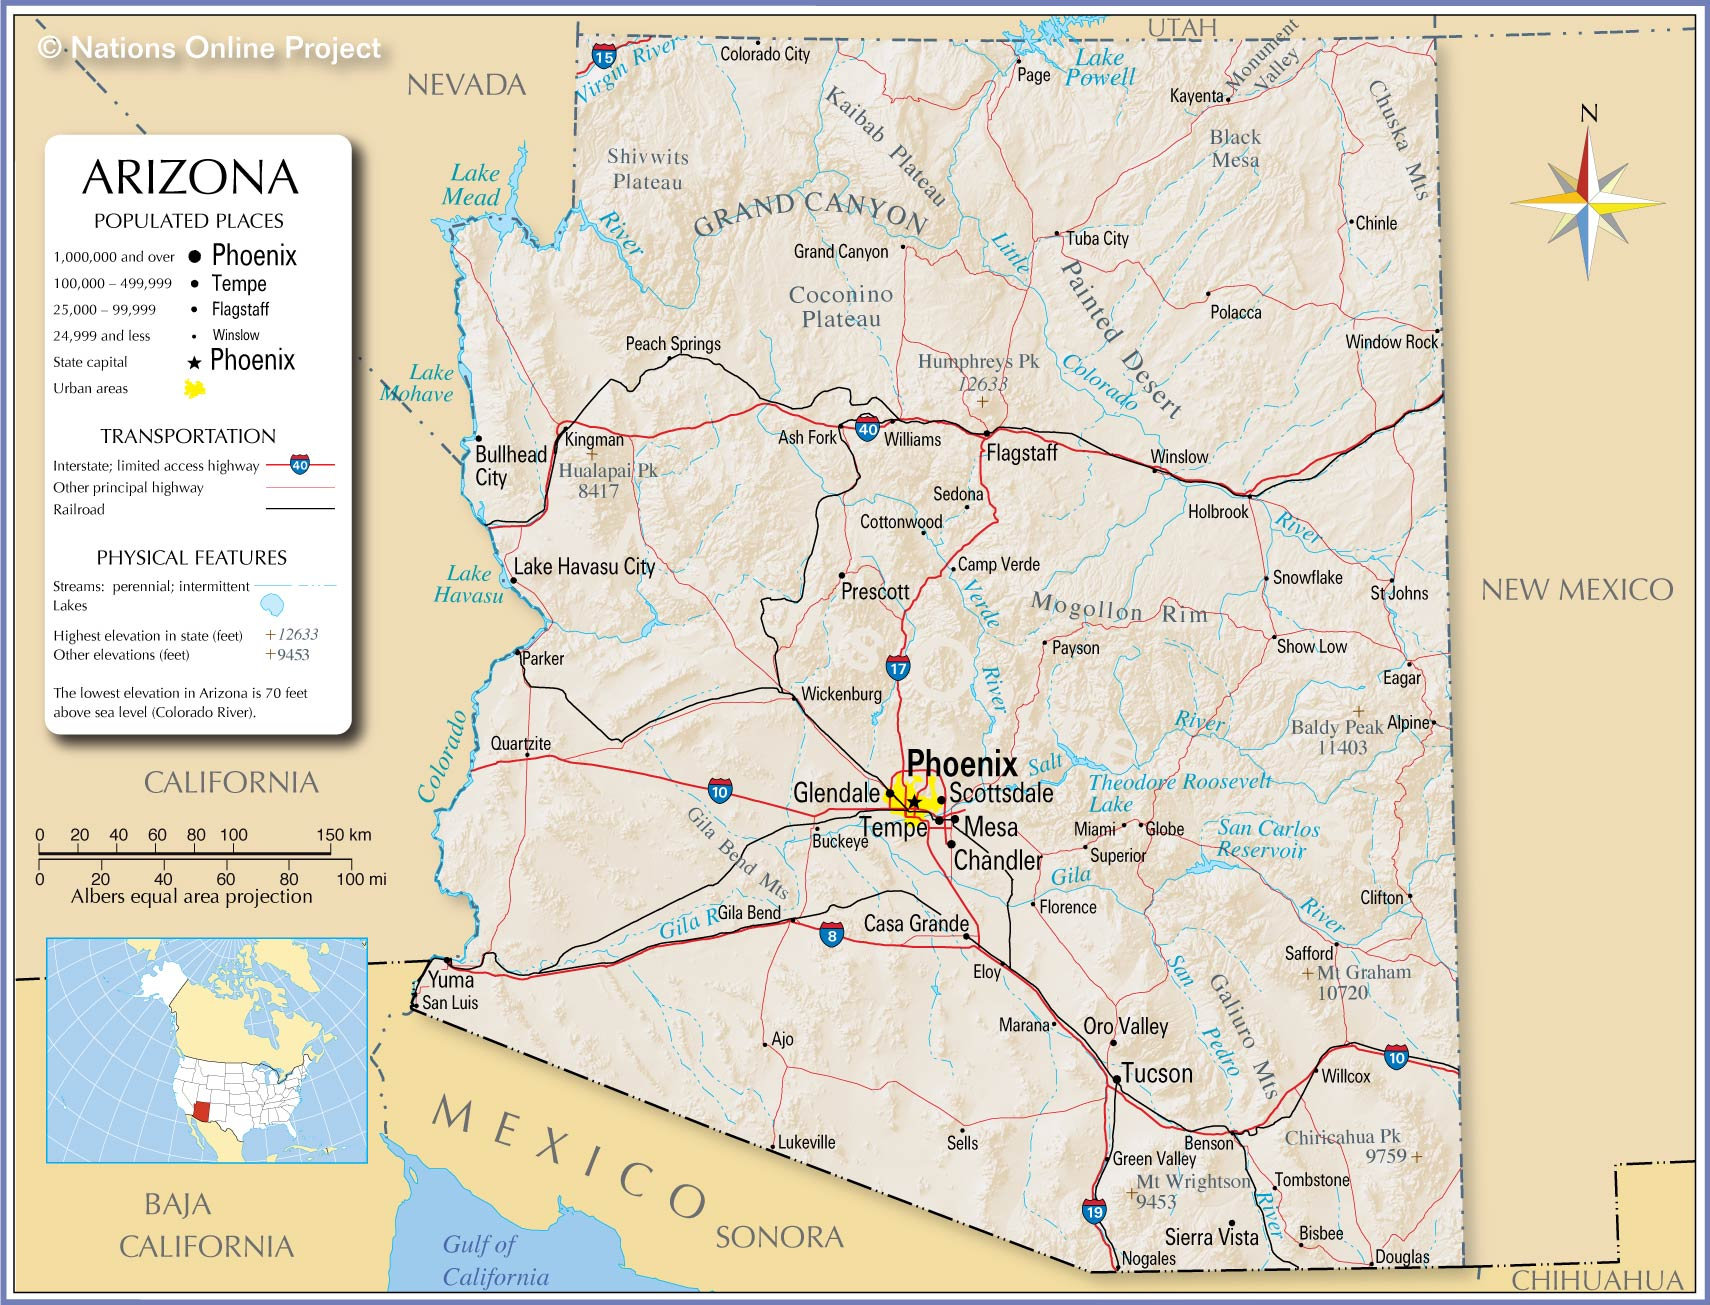 Reference Map Of Arizona USA Nations Online Project - Mapof arizona